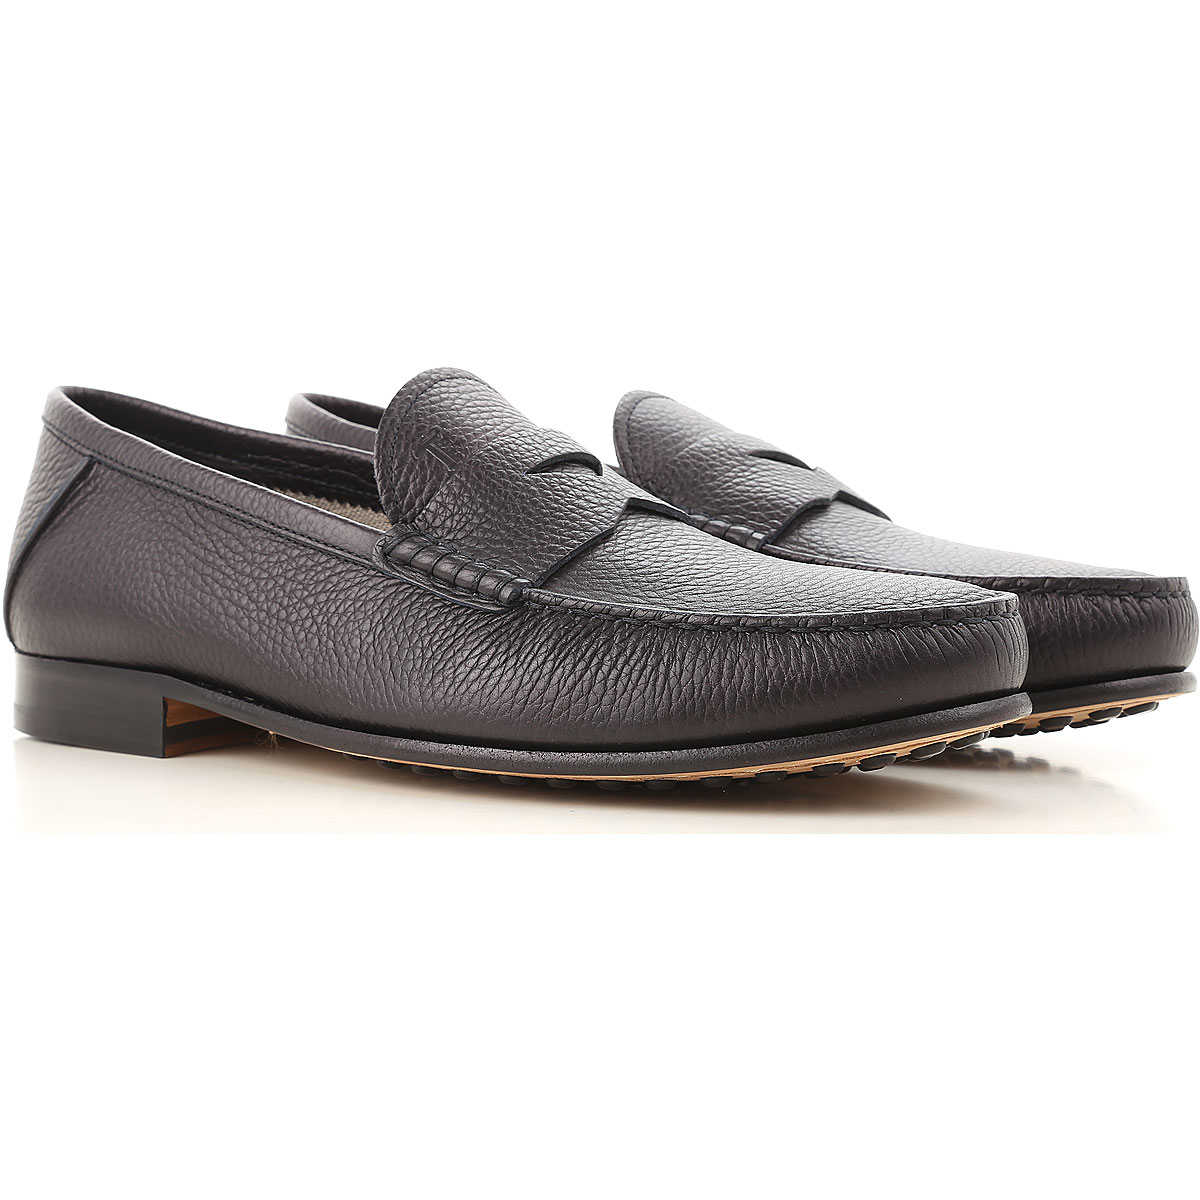 Tods Loafers for Men in Outlet Black USA - GOOFASH